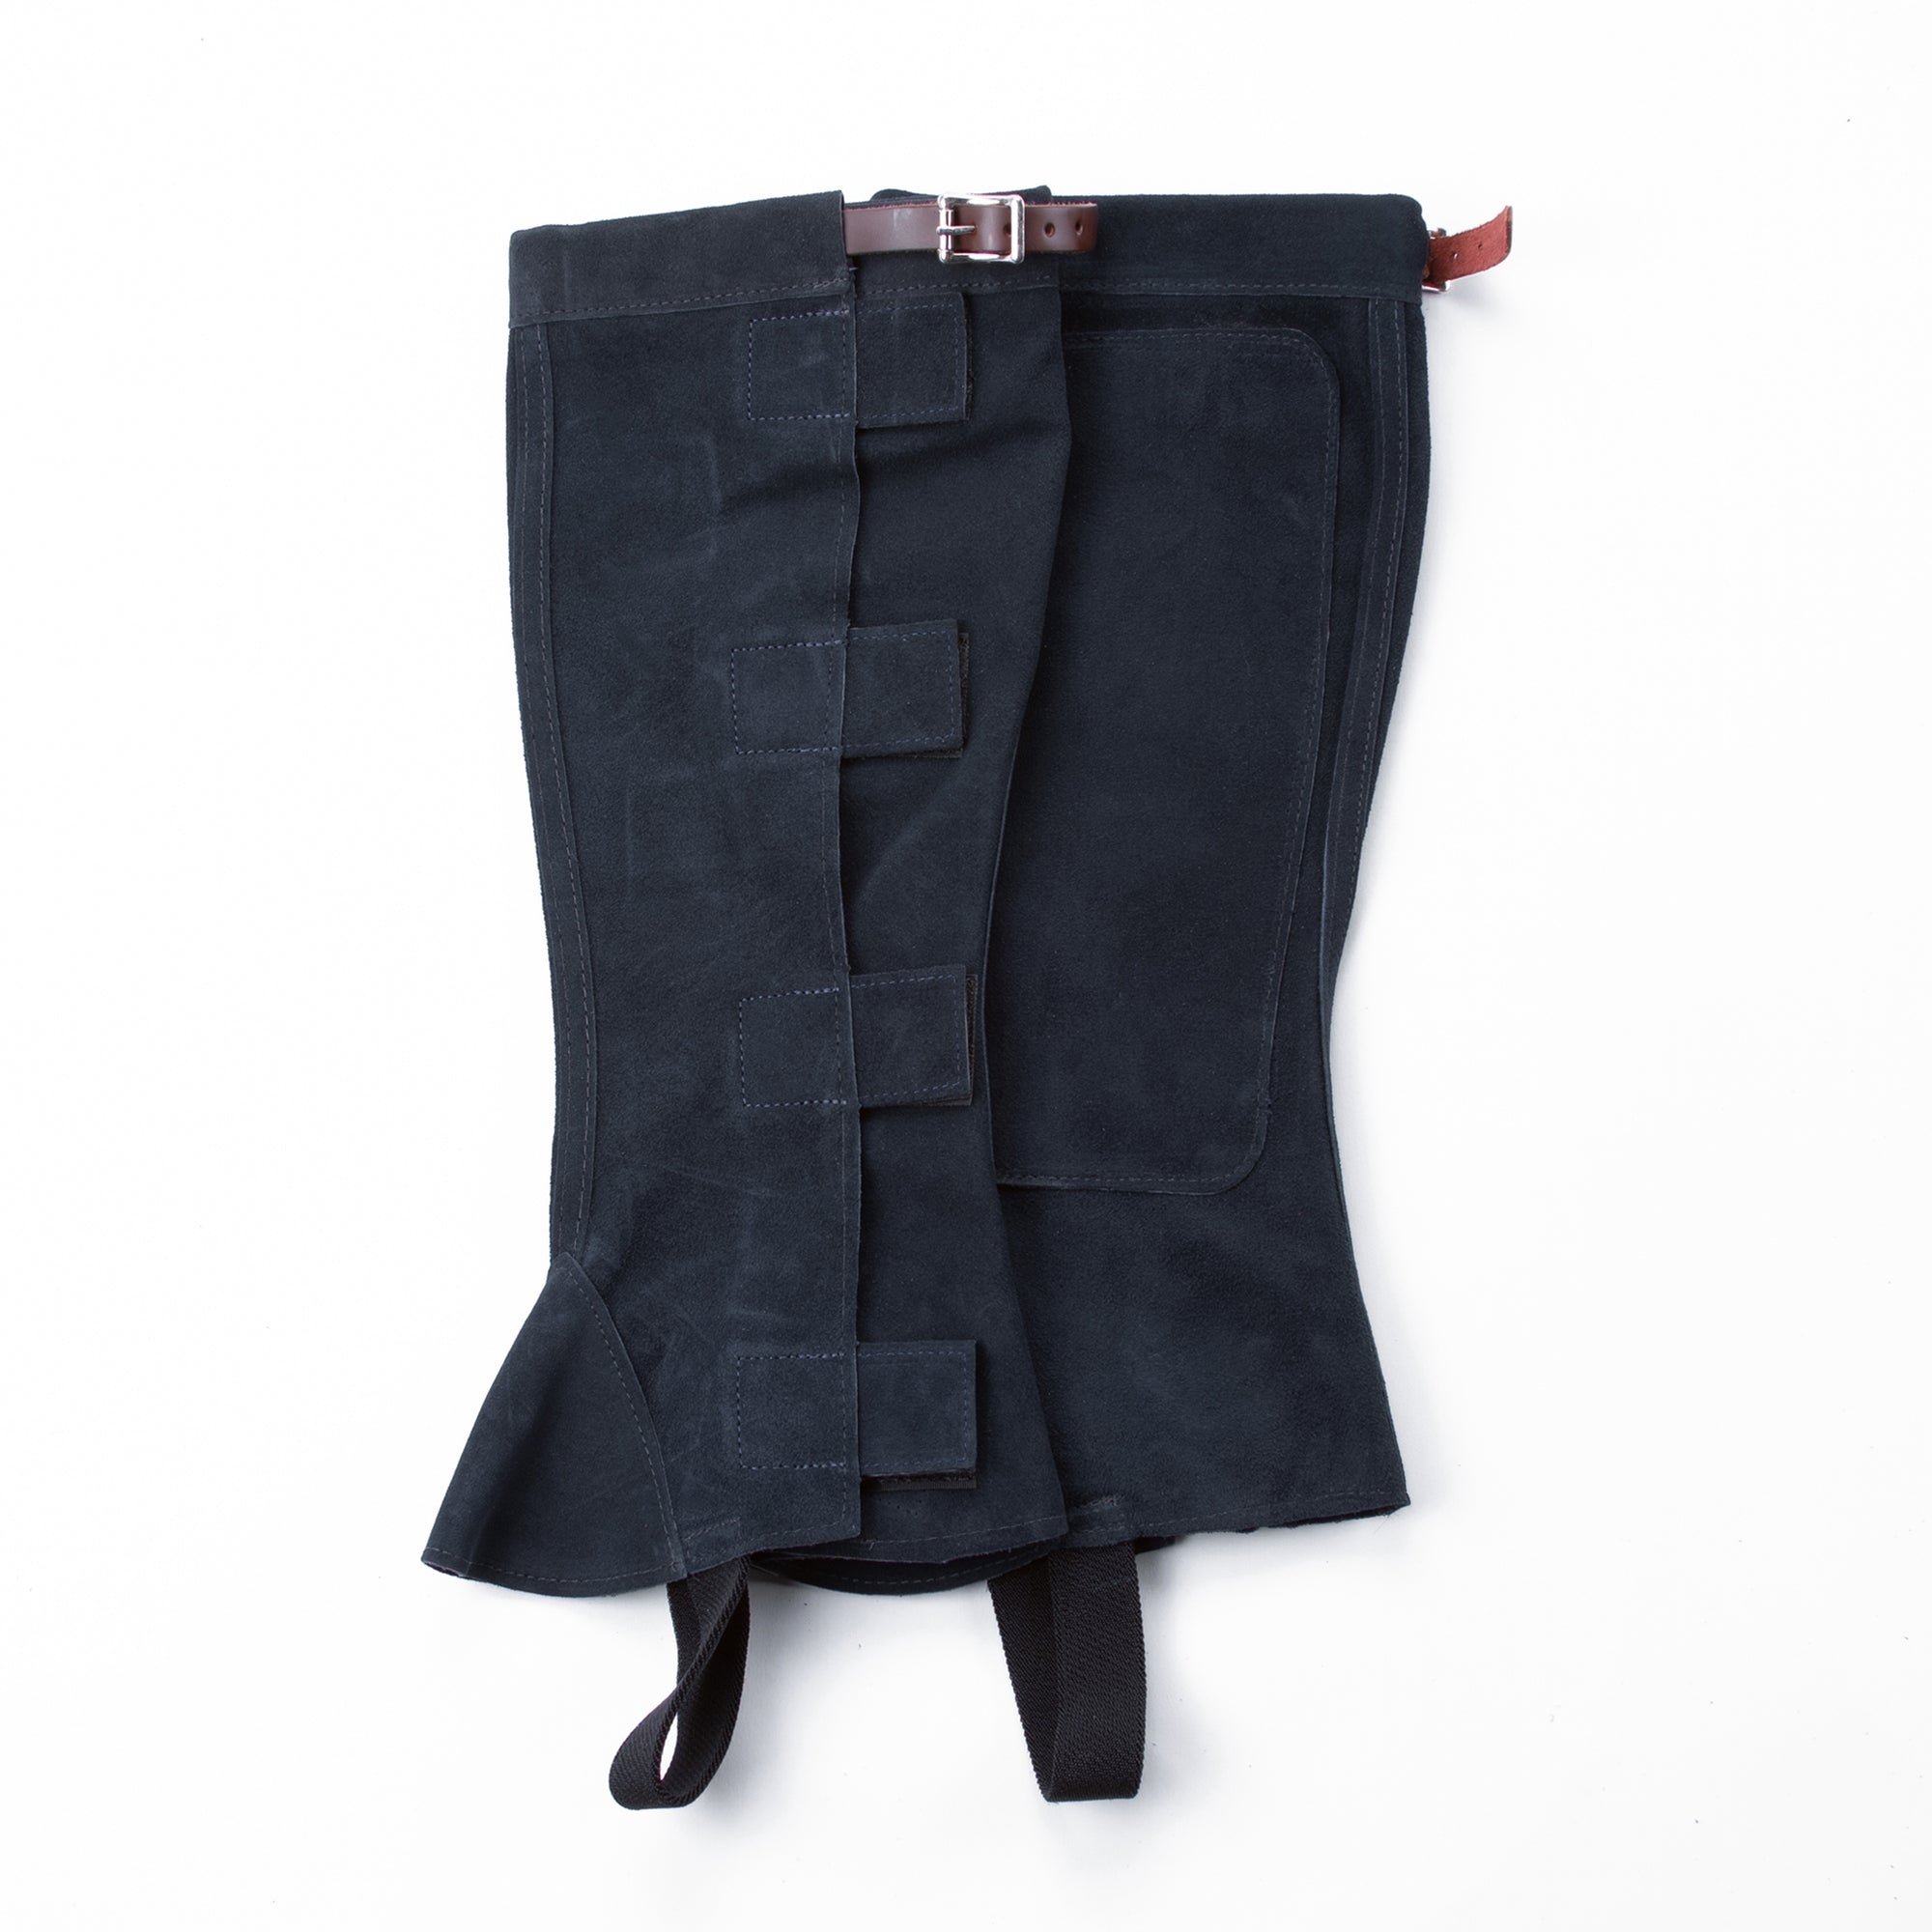 Half Chap - Navy Suede - Velcro & Buckle Closure with Brown Strap